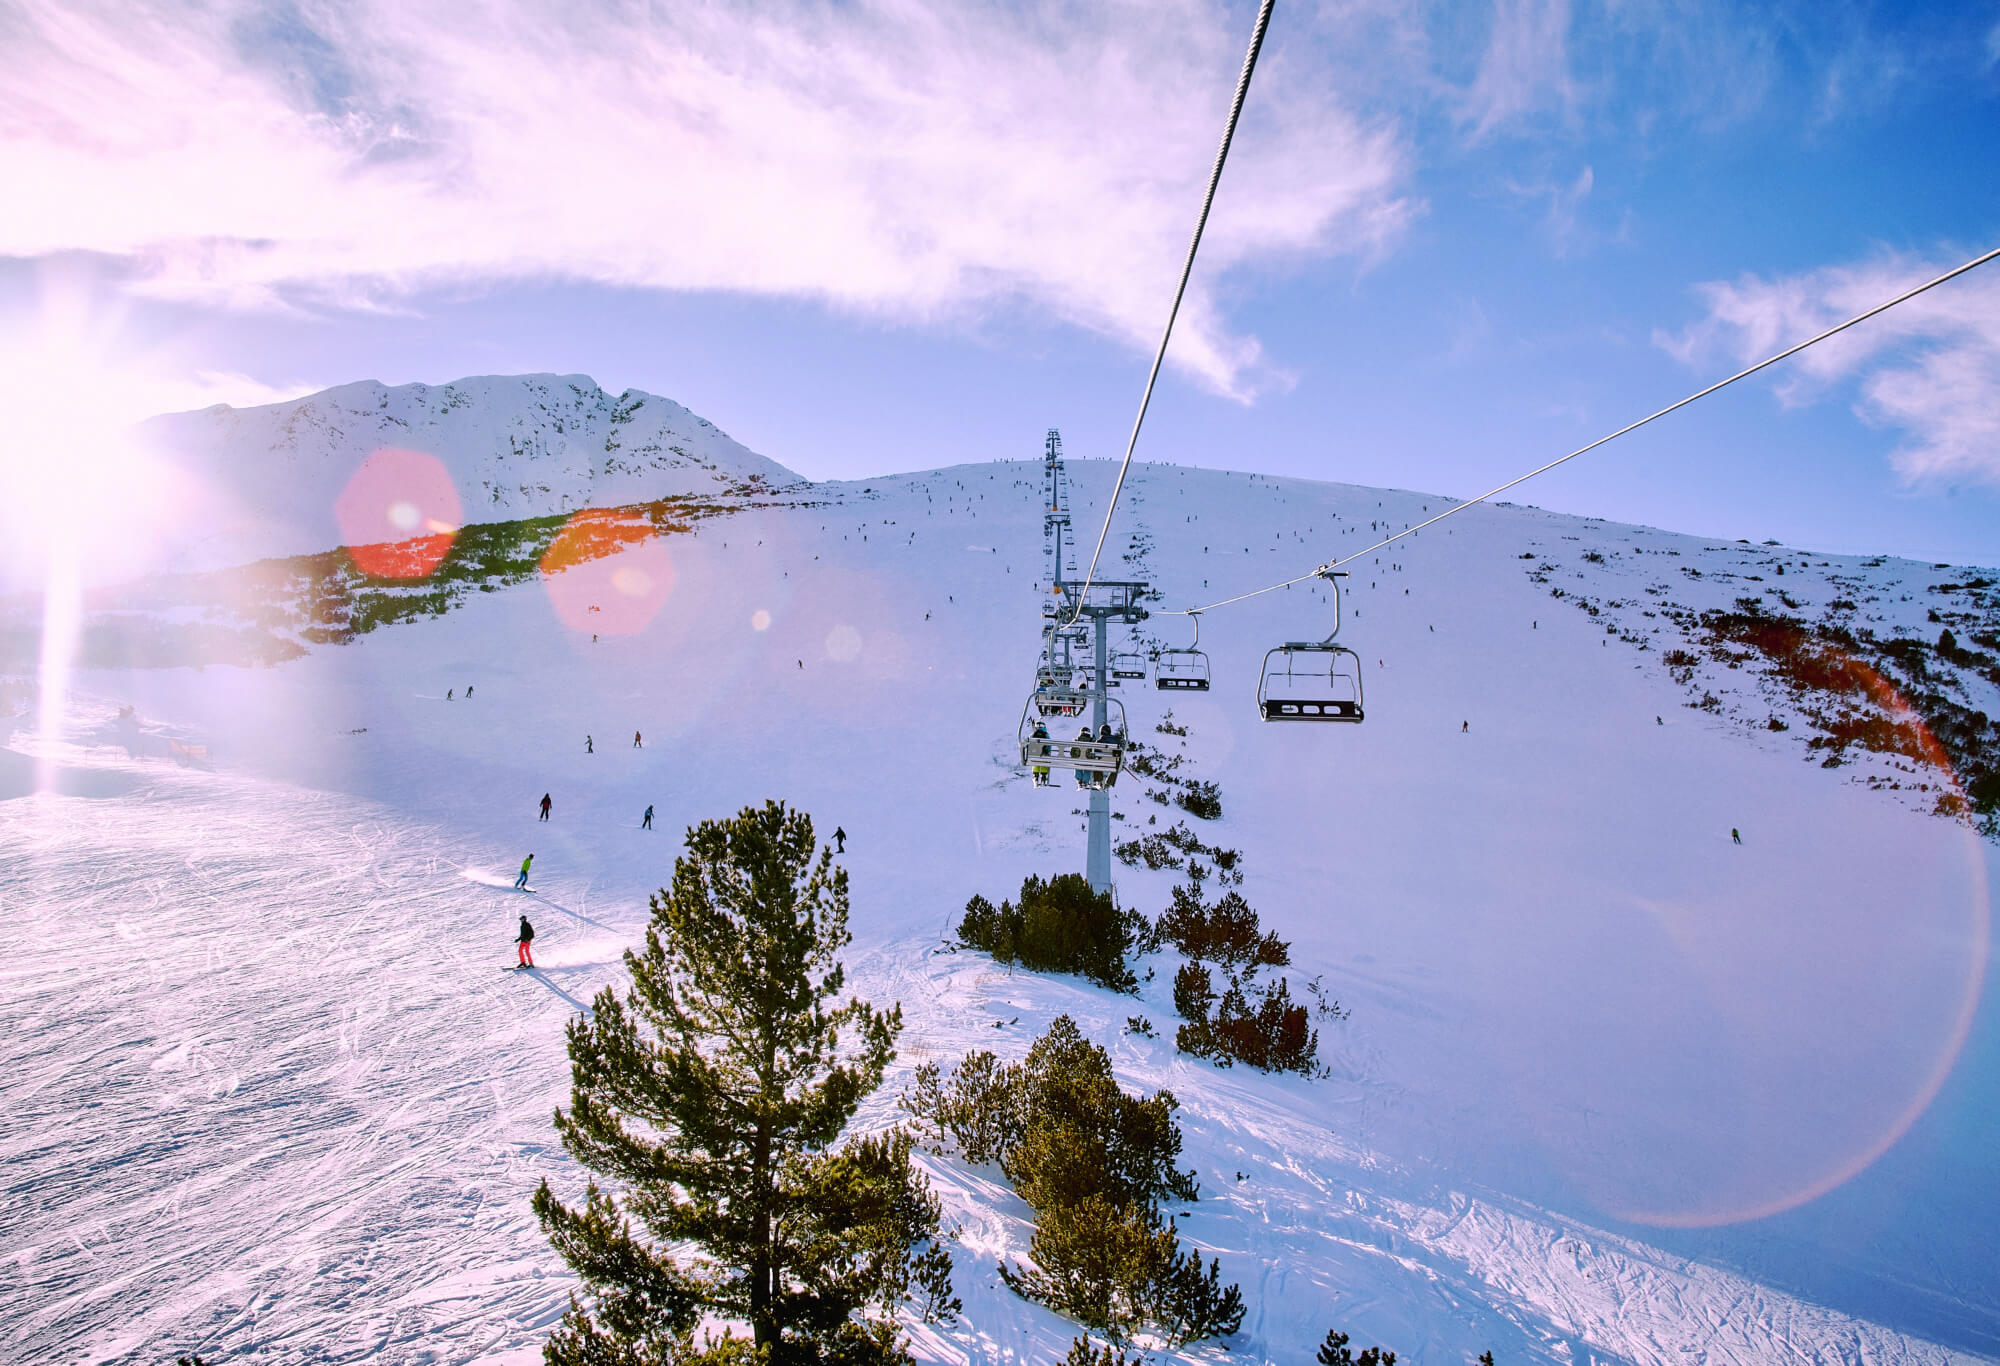 Bansko, Bulgaria is one of the best places to ski in the world